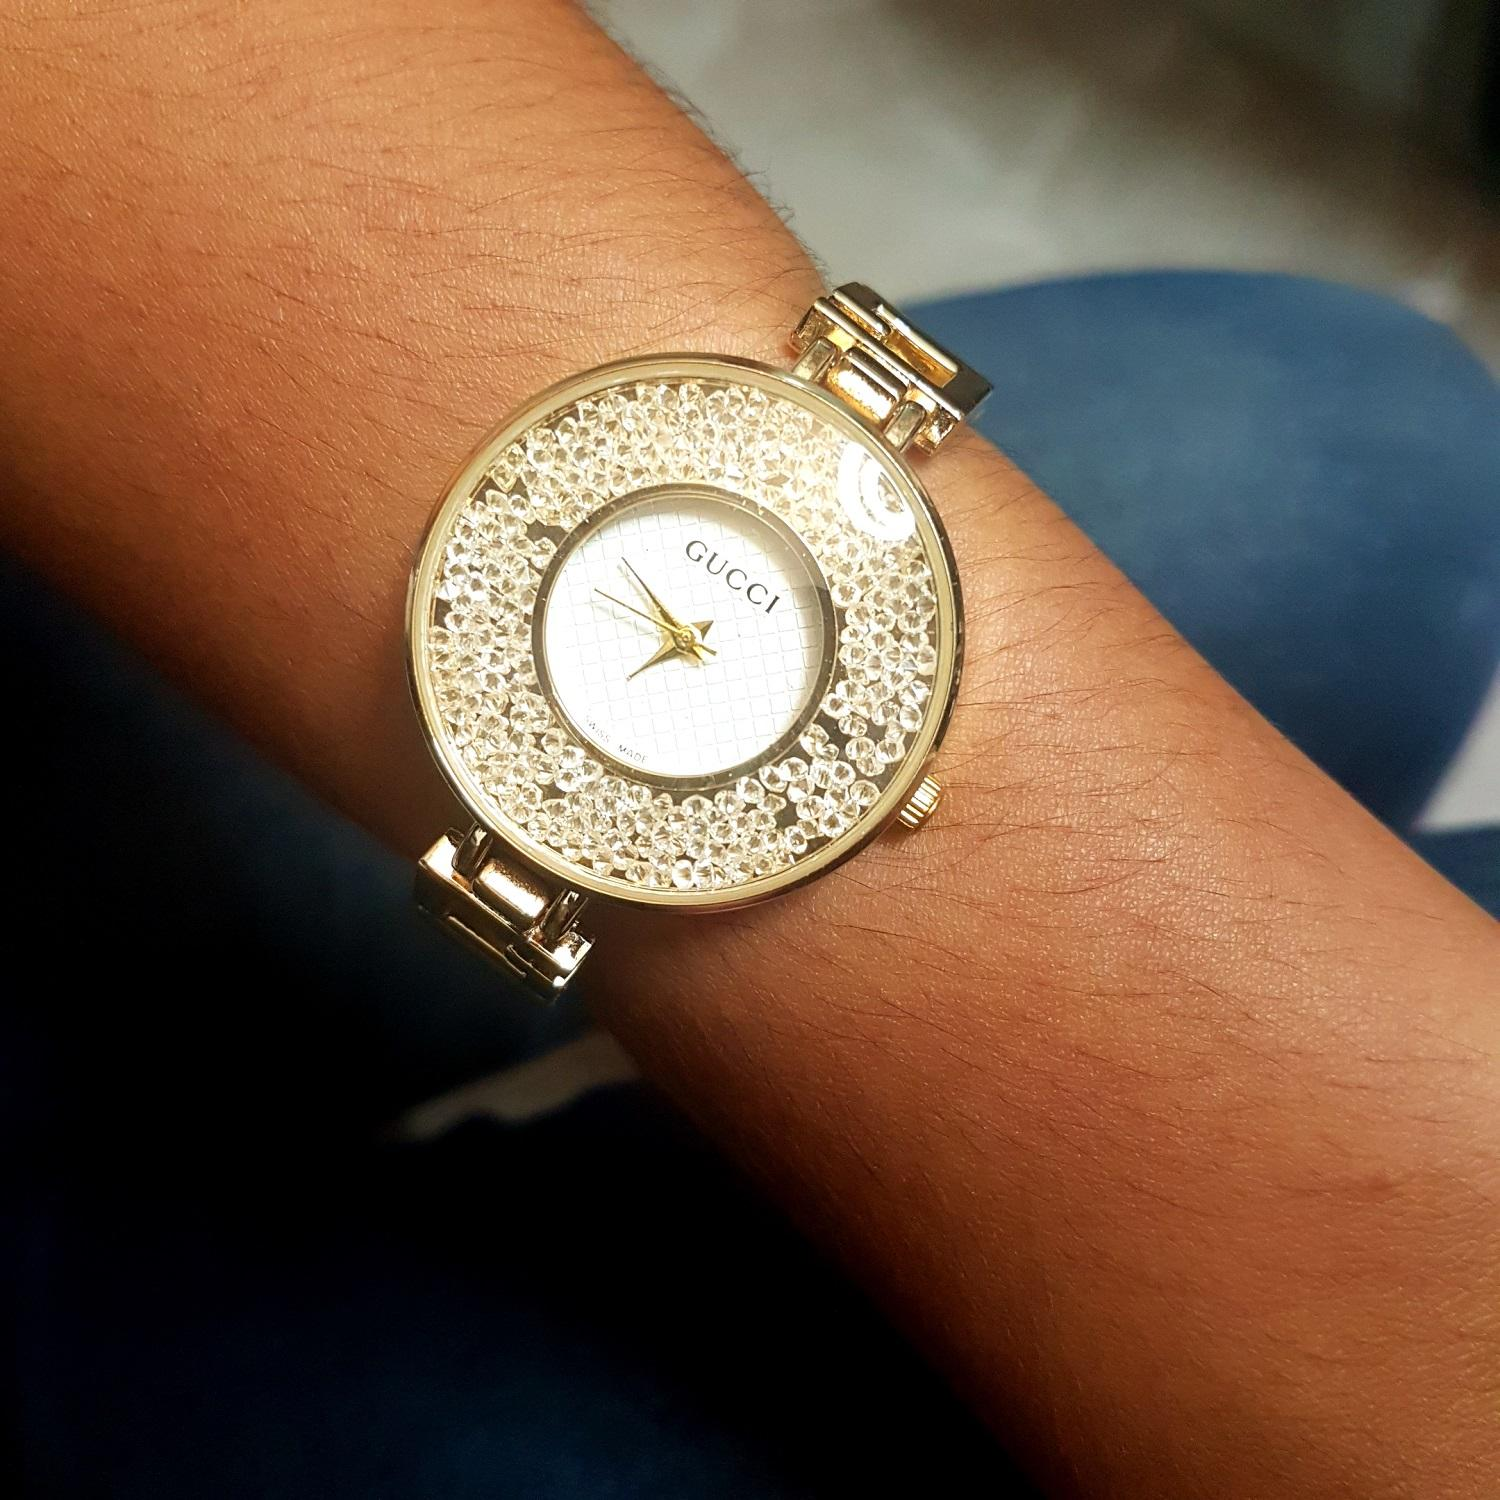 bf3487d0767 Gucci Watches Philippines - Gucci Wristwatches for sale - prices ...